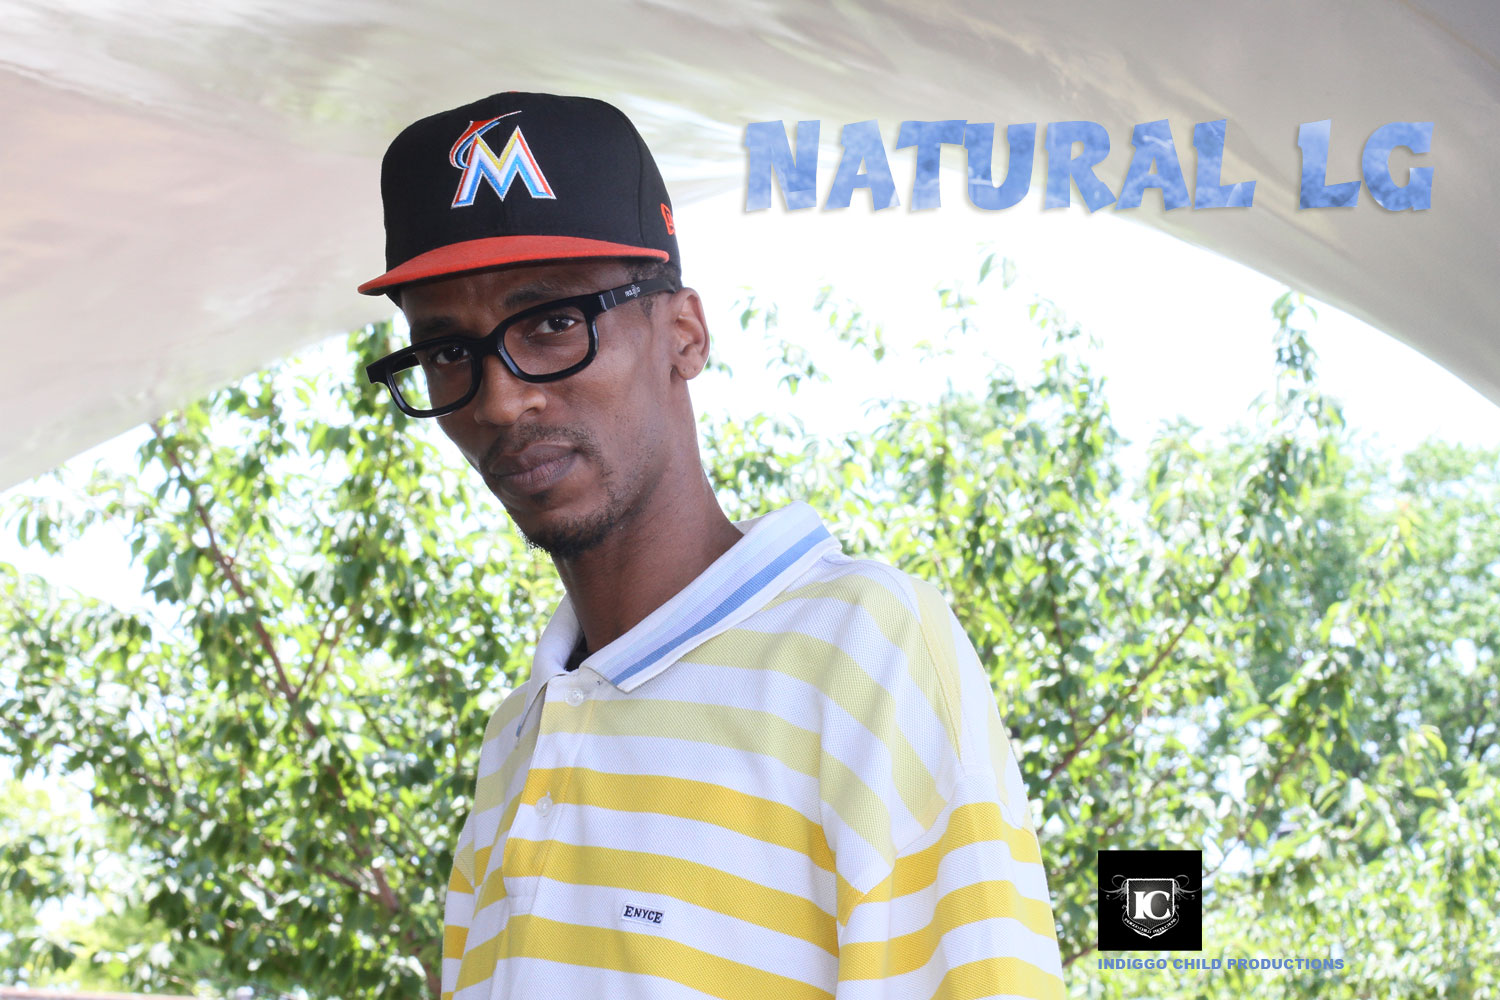 NATURAL-LG-INDIGGO CHILD